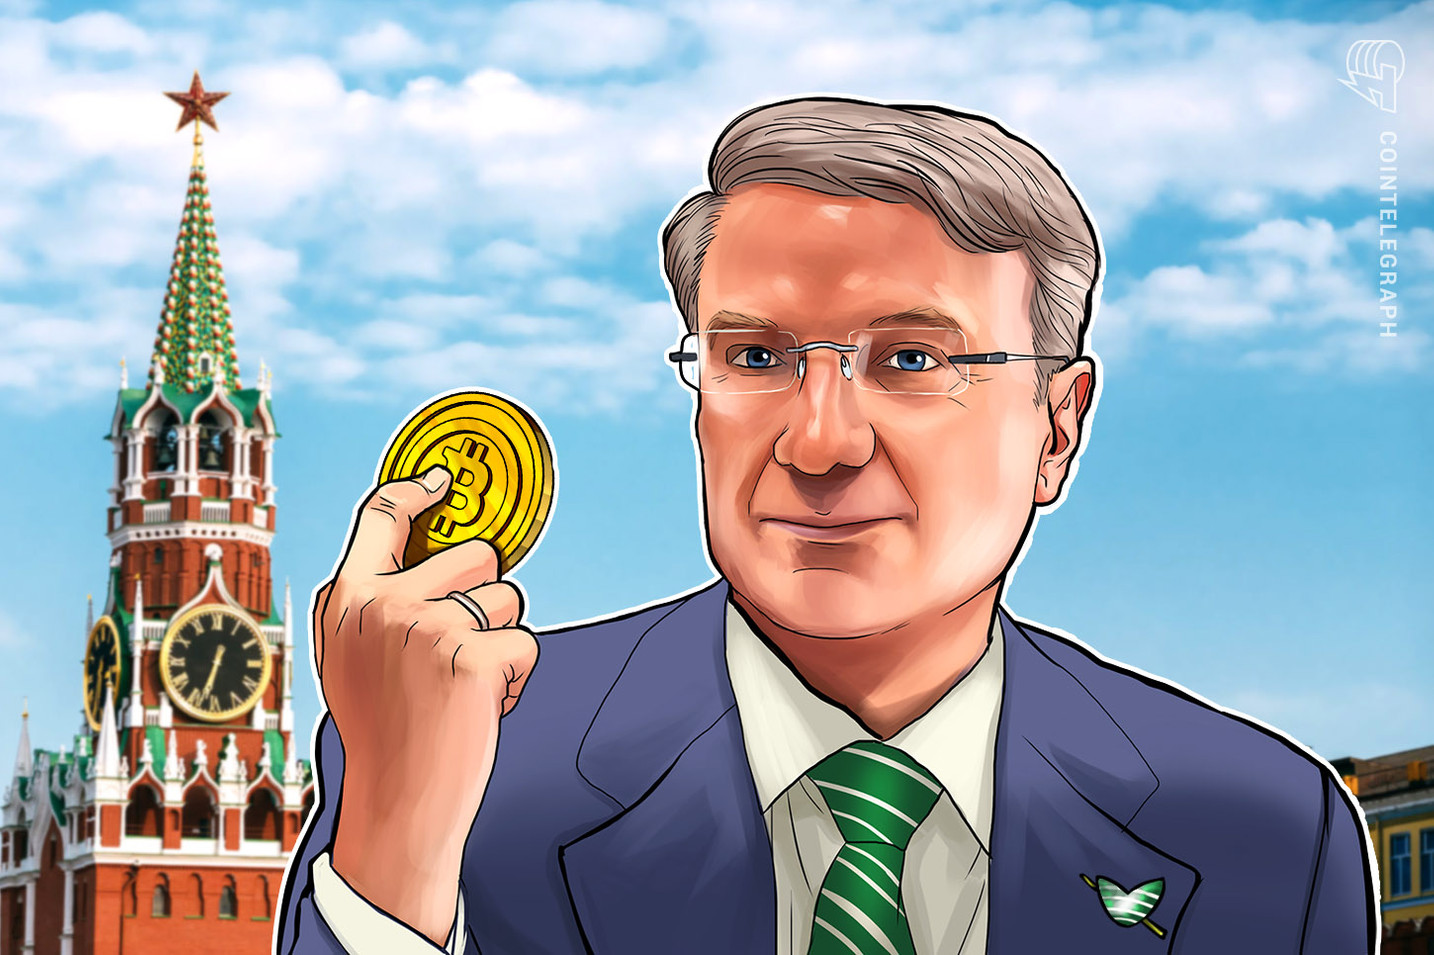 Russia's Largest Bank Confirms It Will Not Develop Crypto-Related Services